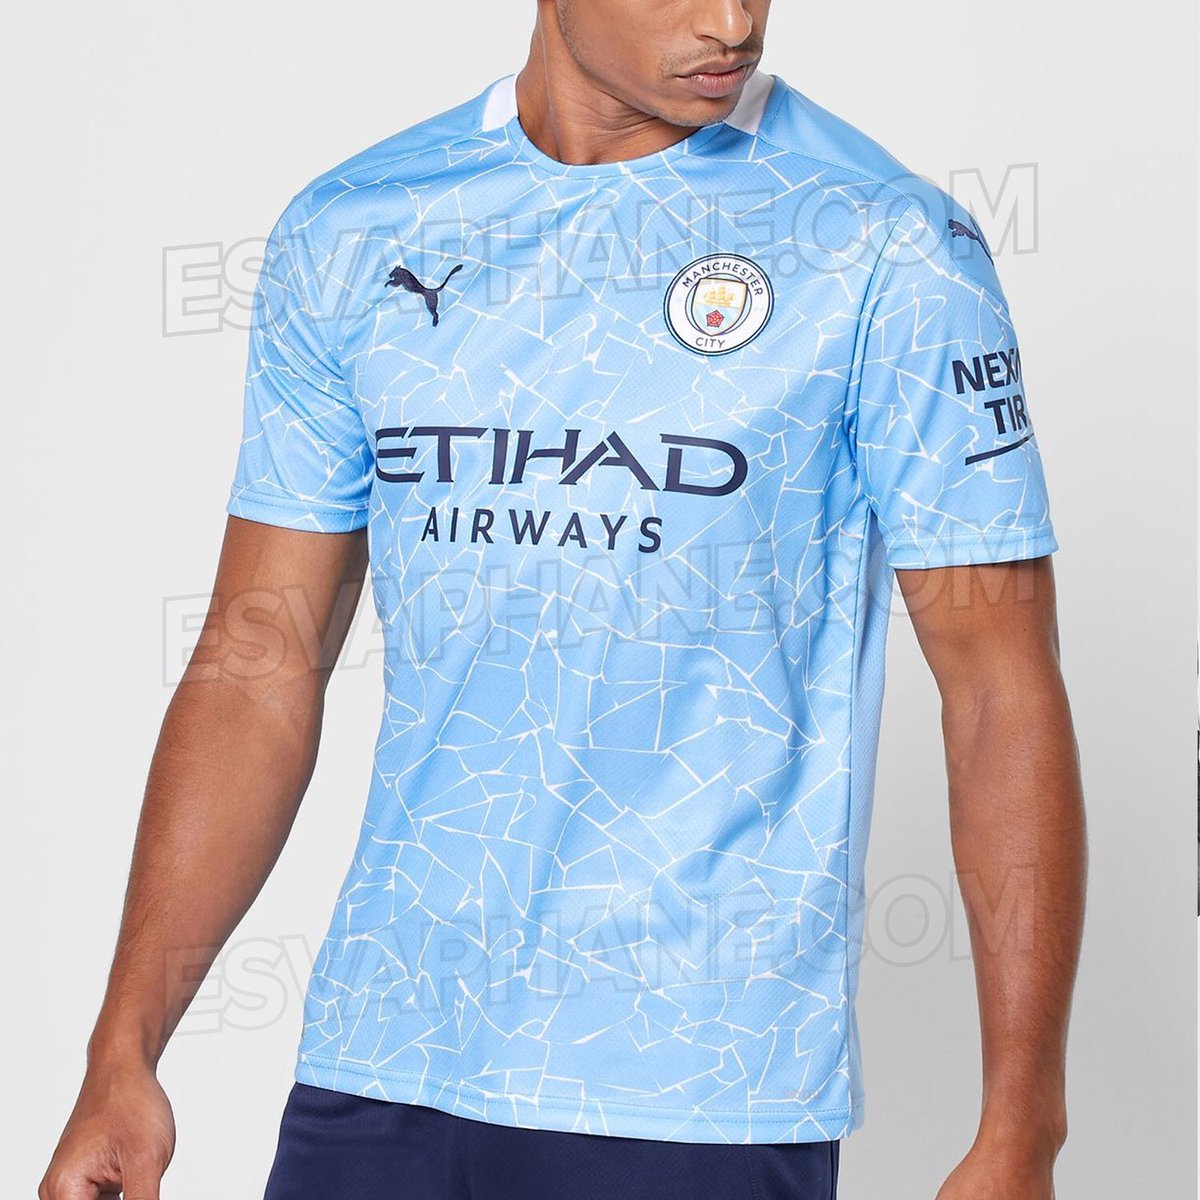 | #ManCity 2020/21 Home Shirt (leaked).   Your thoughts?   [@esvaphane]pic.twitter.com/ibwWKiWVEw